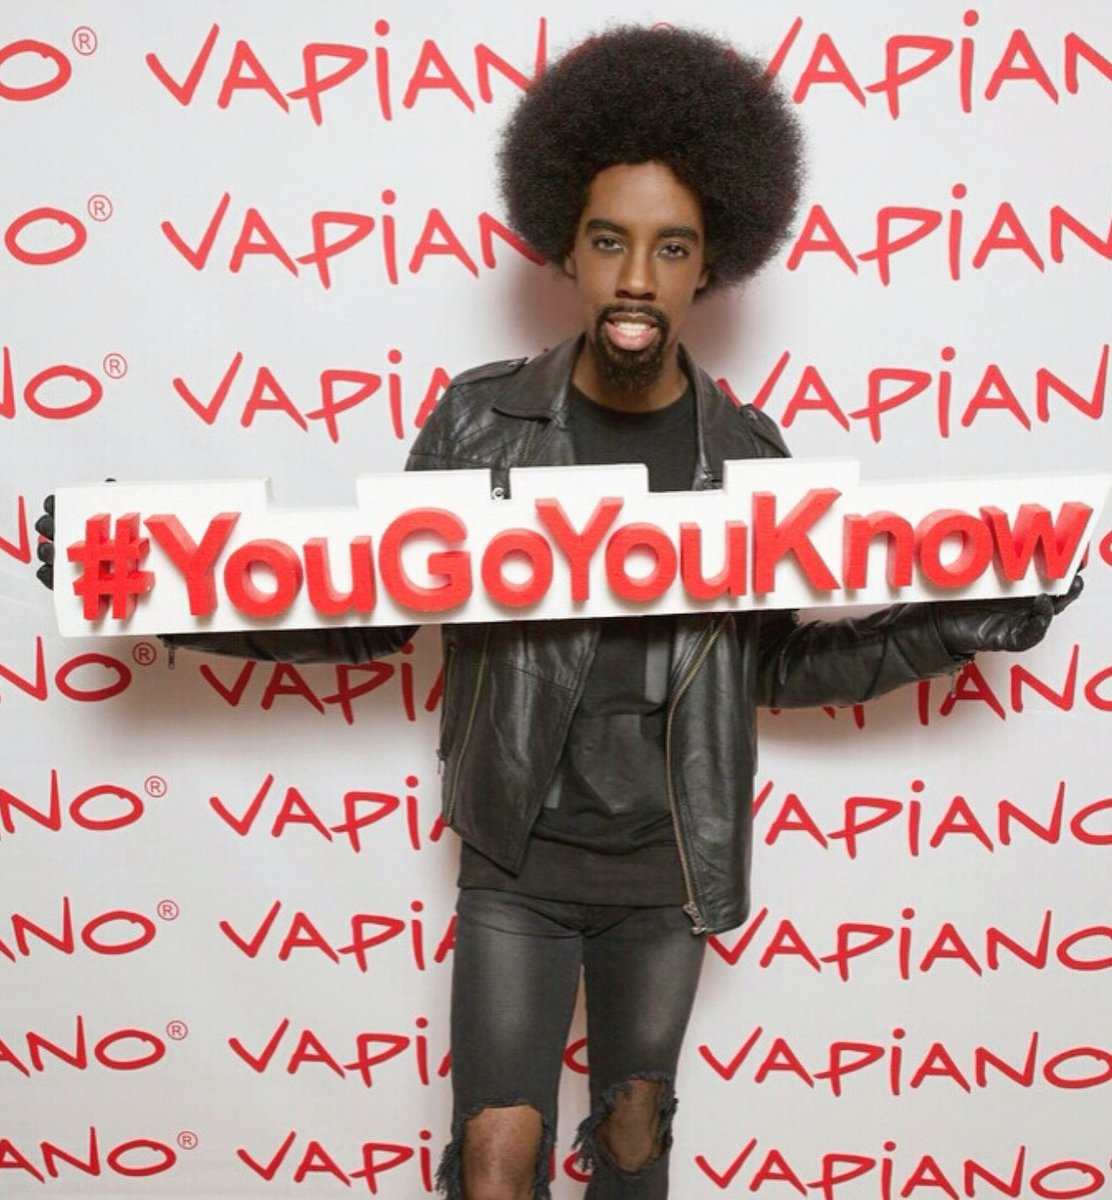 Had a great time at the launch of @VapianoUK (@RiskCouture #InThoseJeans • @tenmenclothing • @Topman) #YouGoYouKnow<br>http://pic.twitter.com/p72P6MxFwg